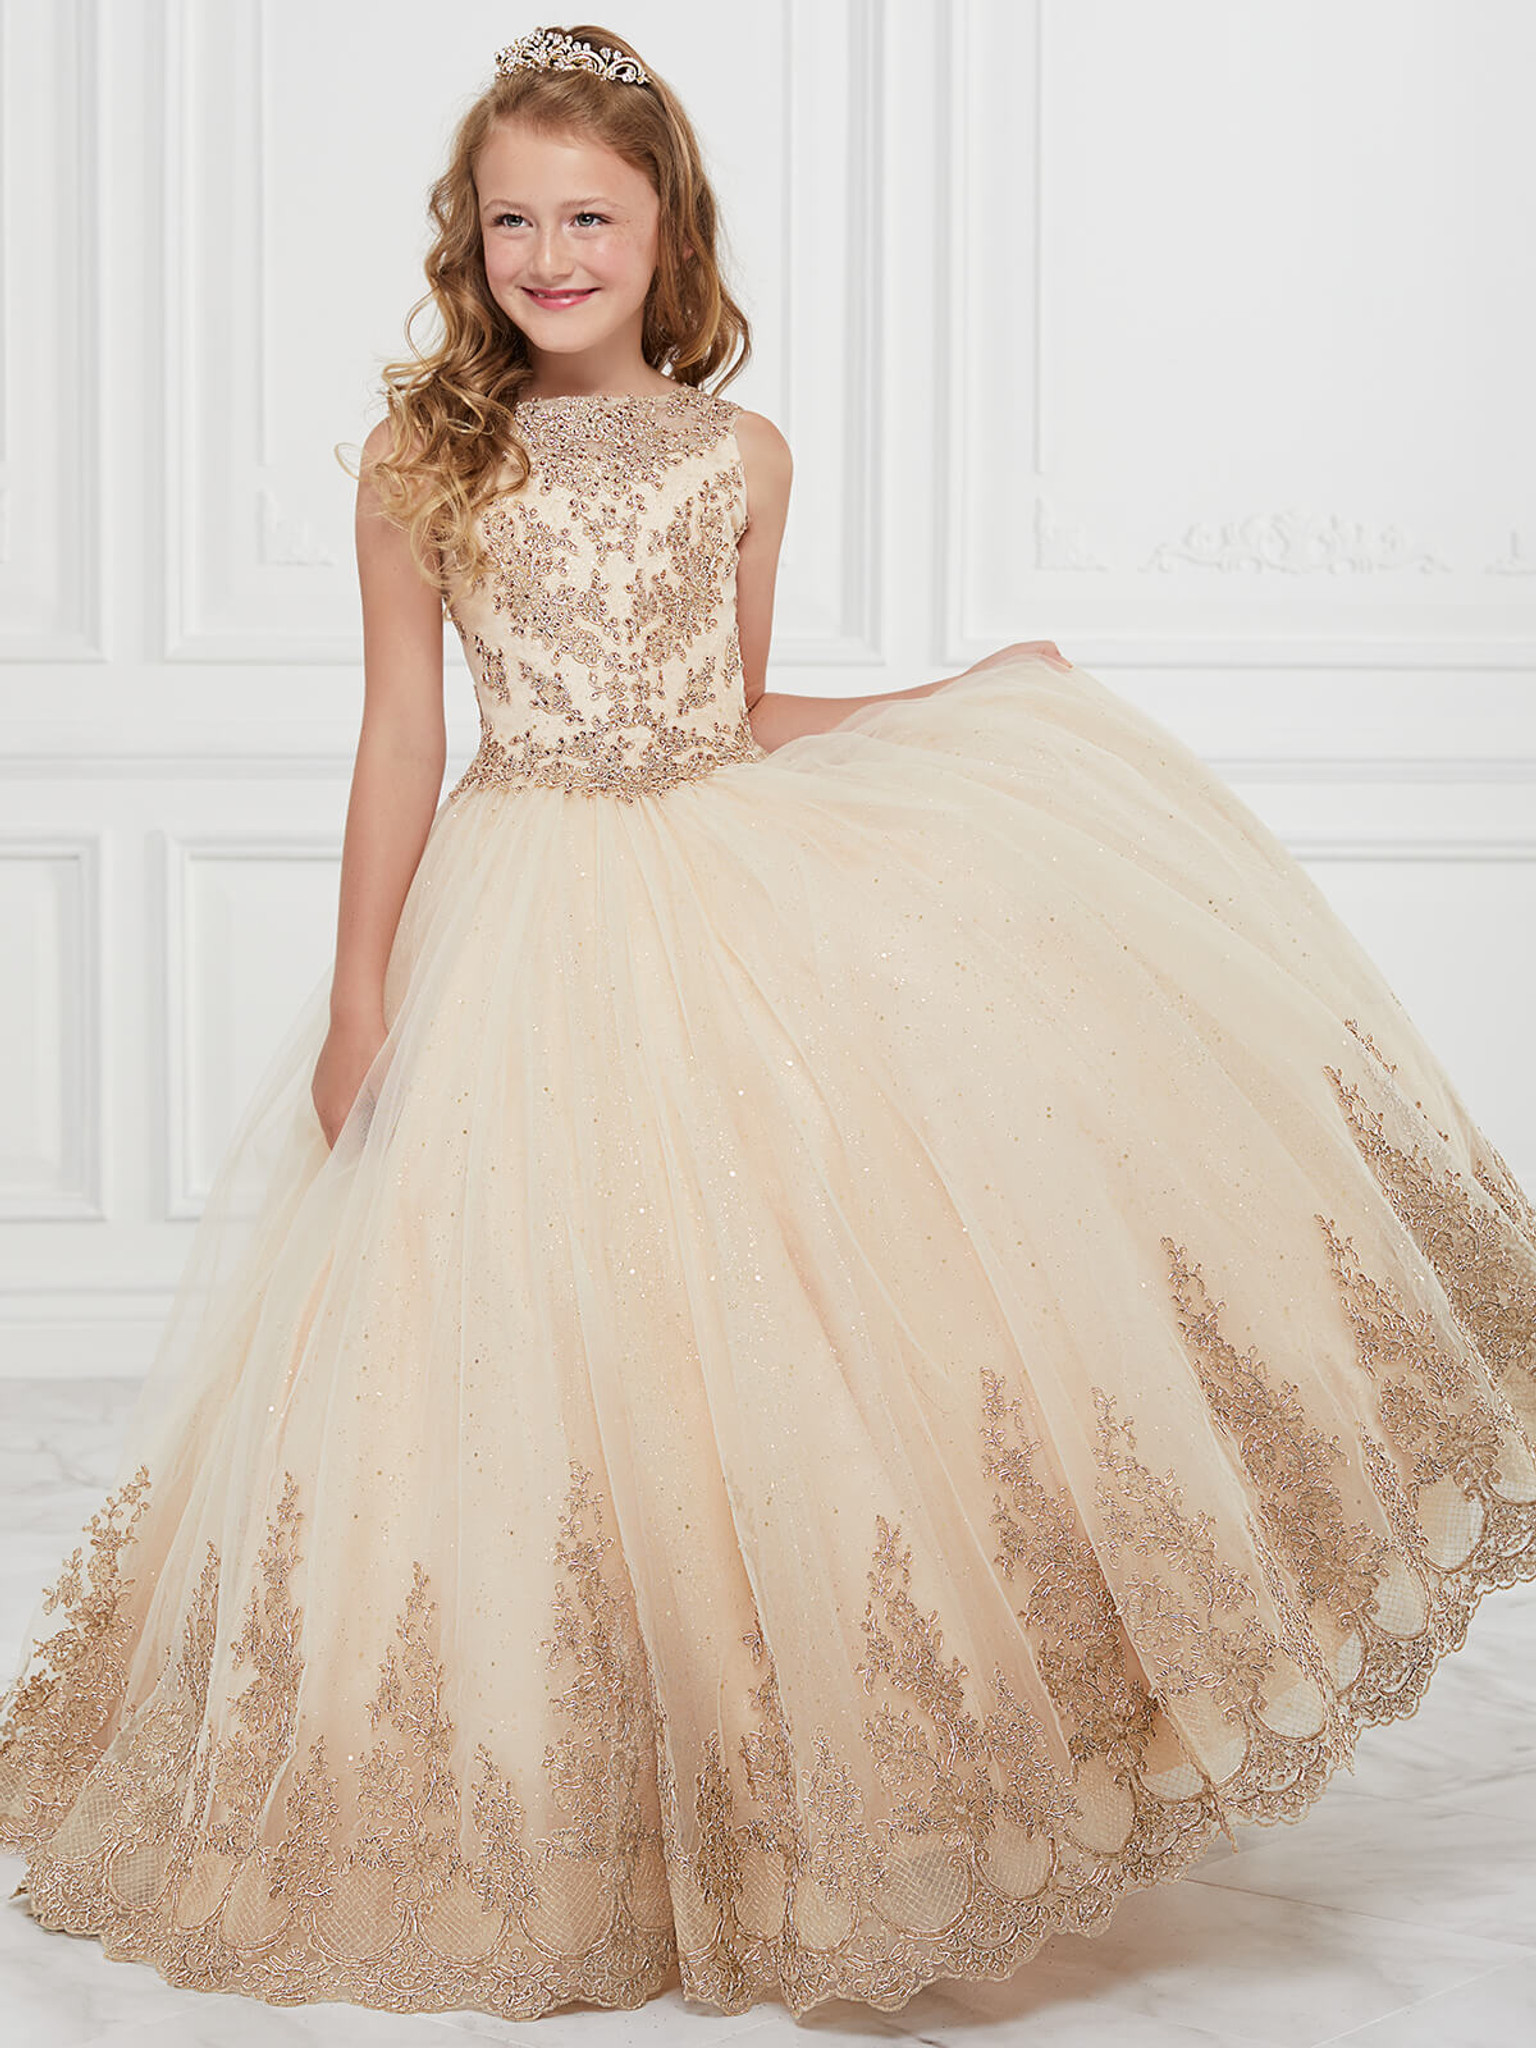 Tulle Tiffany Princess 13598Pageant Dress PageantDesigns